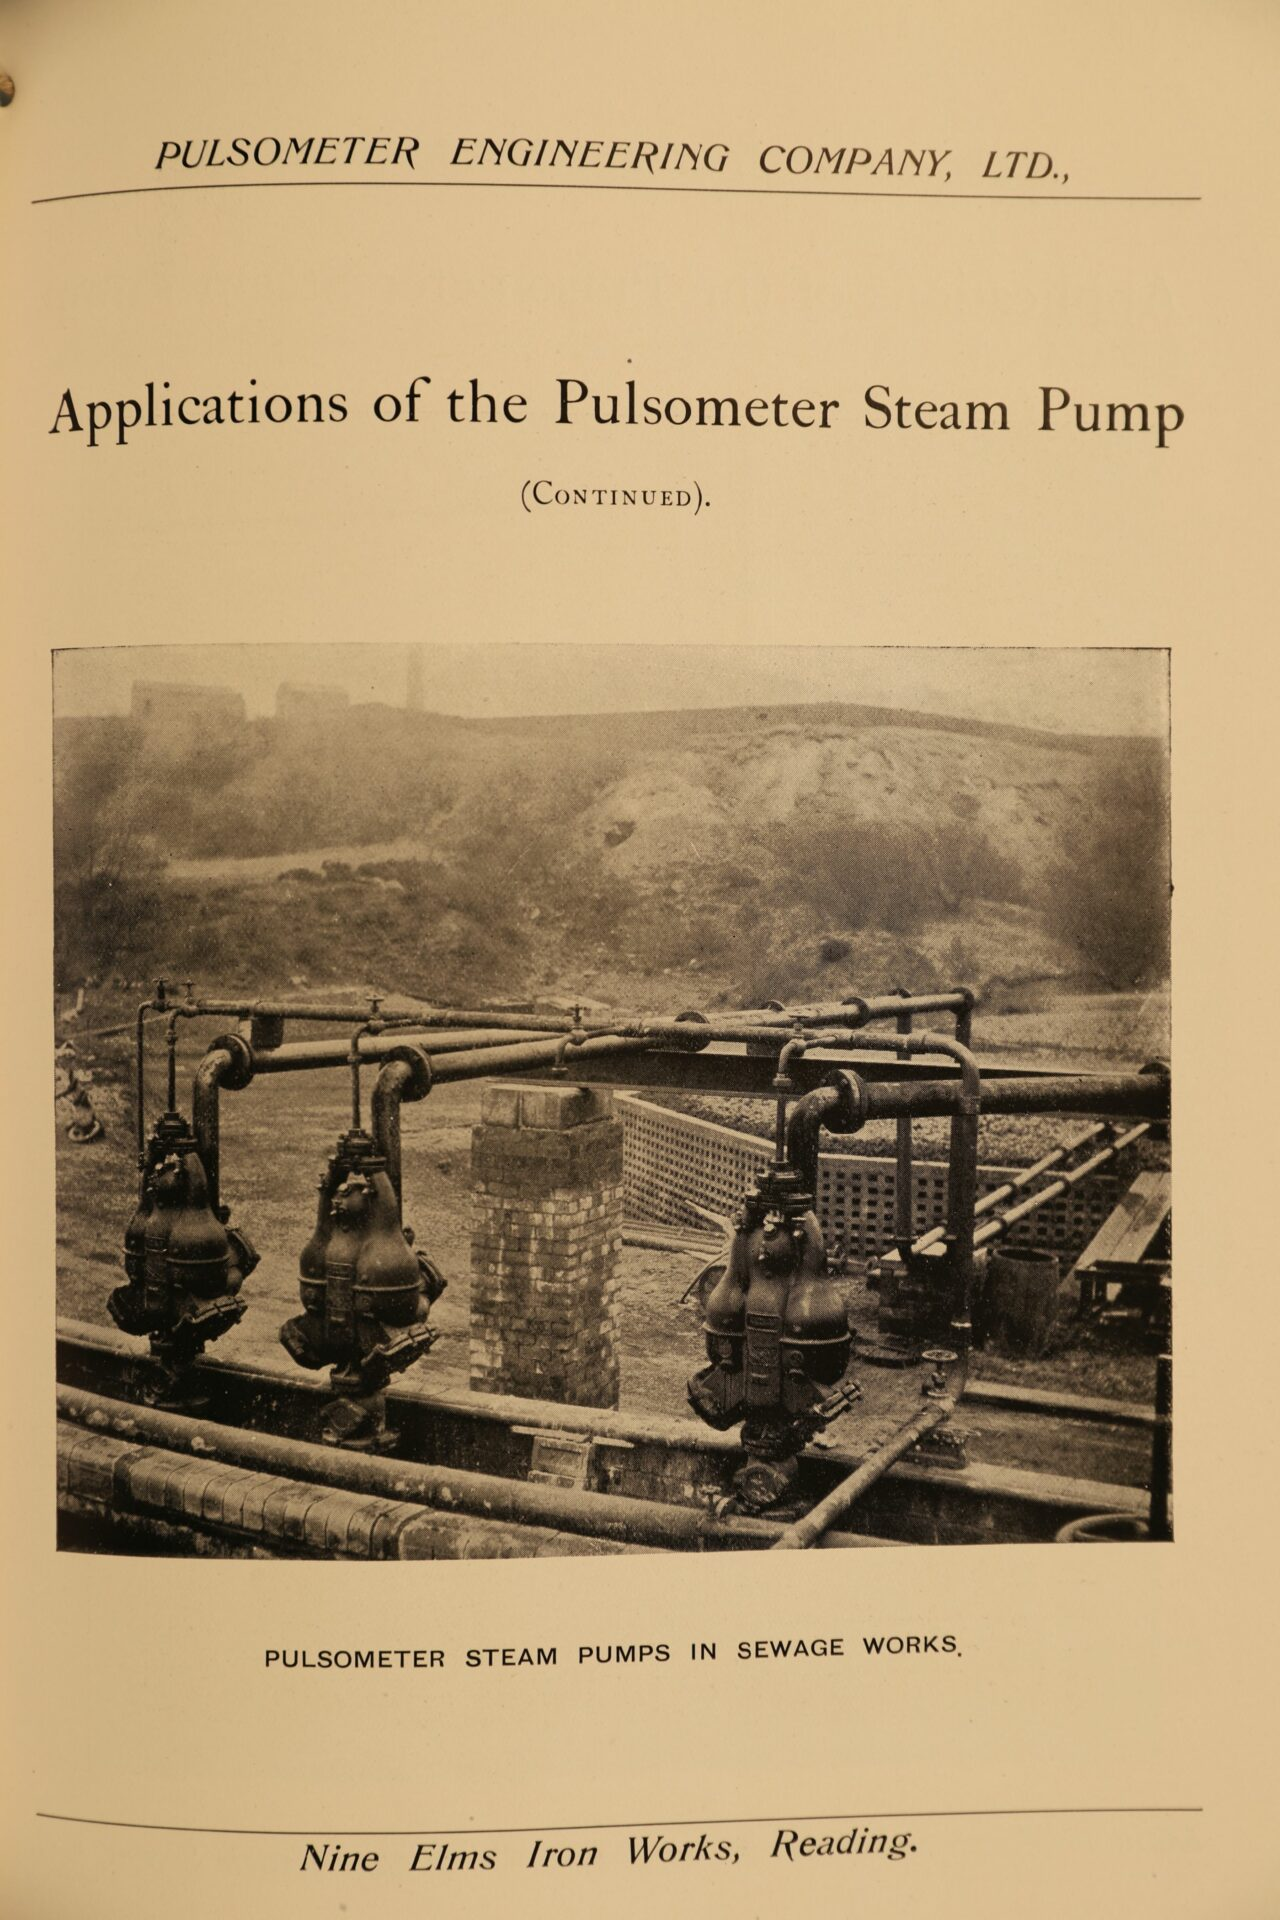 Image of page 43 from Pulsometer Steam Pumps Catalogue 1908 showing pumps at work in a sewage works